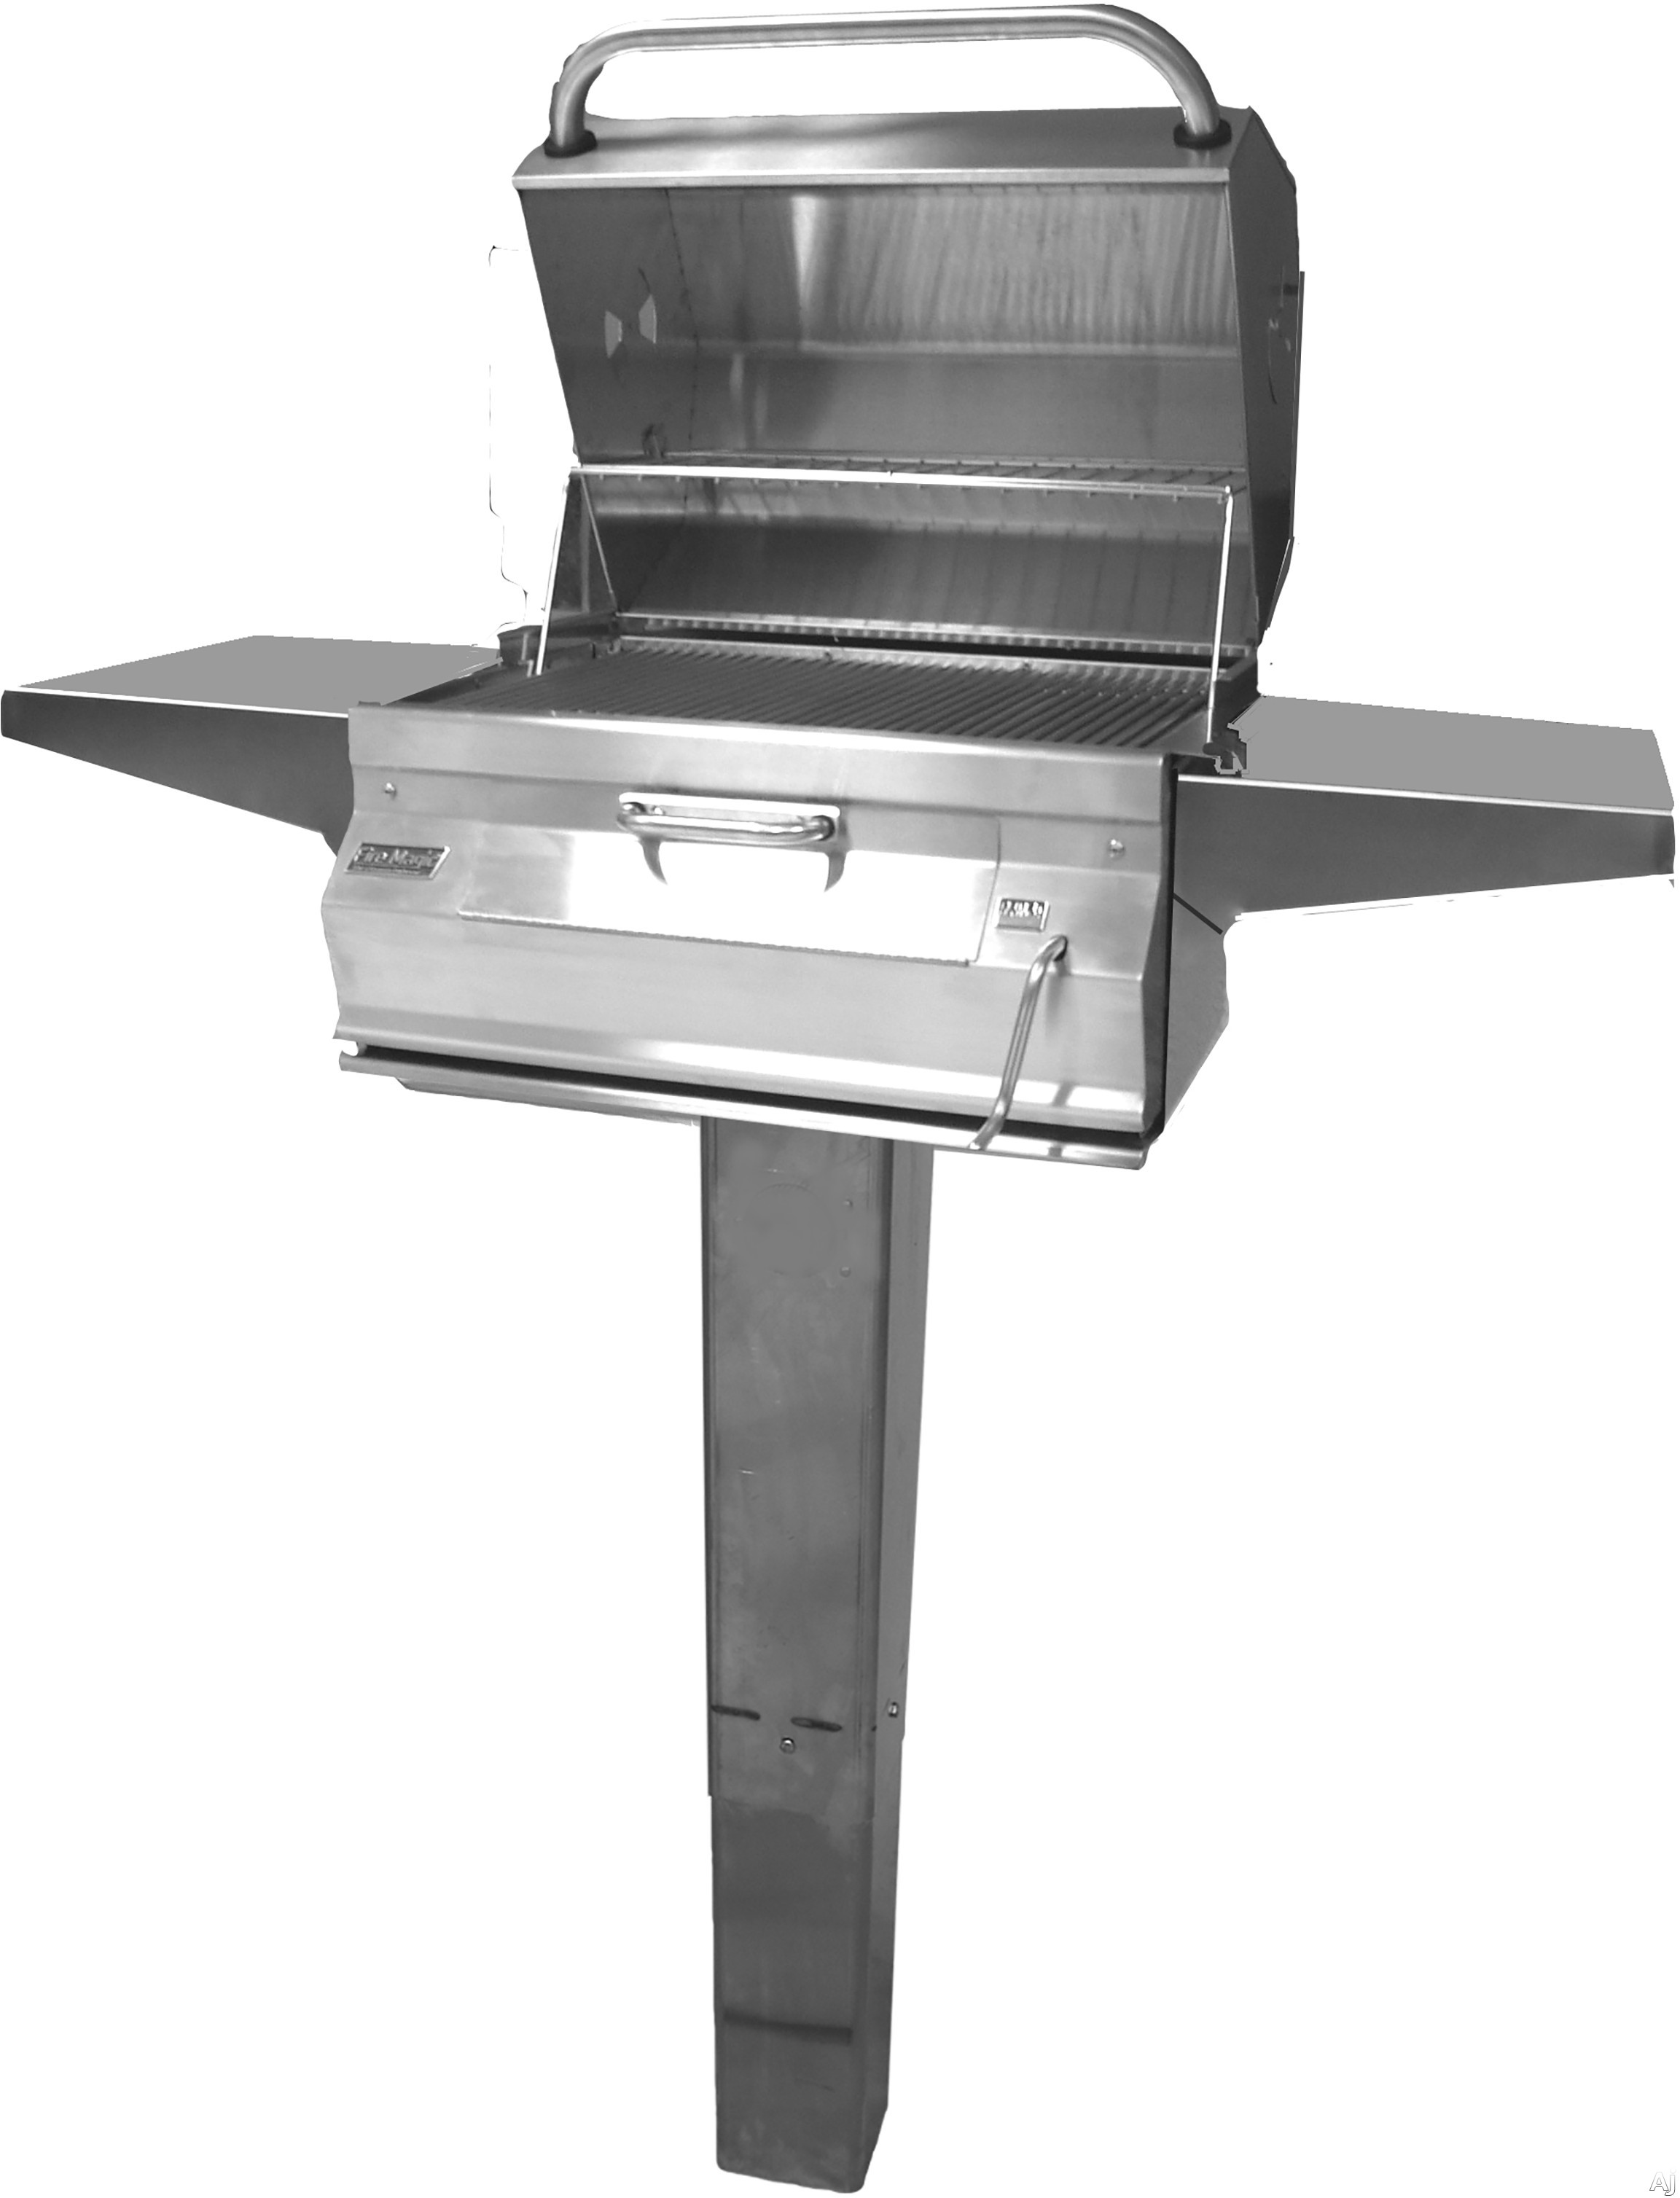 Fire Magic Charcoal Legacy 22SC01CG6 Custom In-Ground Post Charcoal Grill with 432 sq. in. Cooking Area, Warming Rack, Adjustable Charcoal Pan, Smoker Oven and